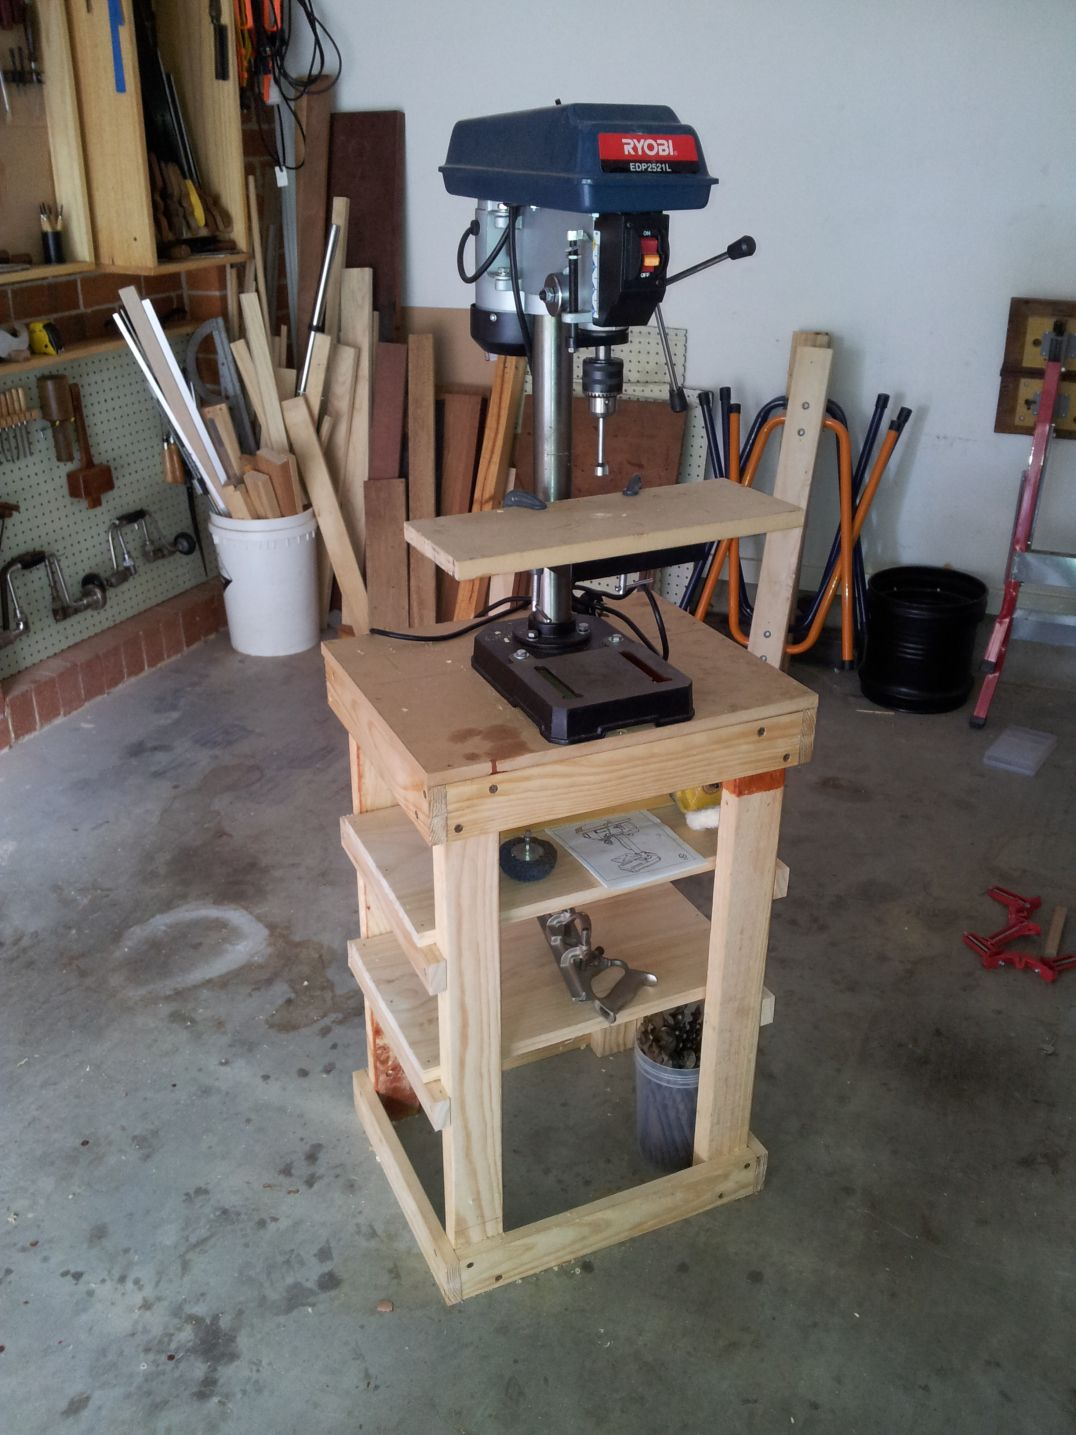 Drill Press Stand The Woodwork Geek Drill press stand